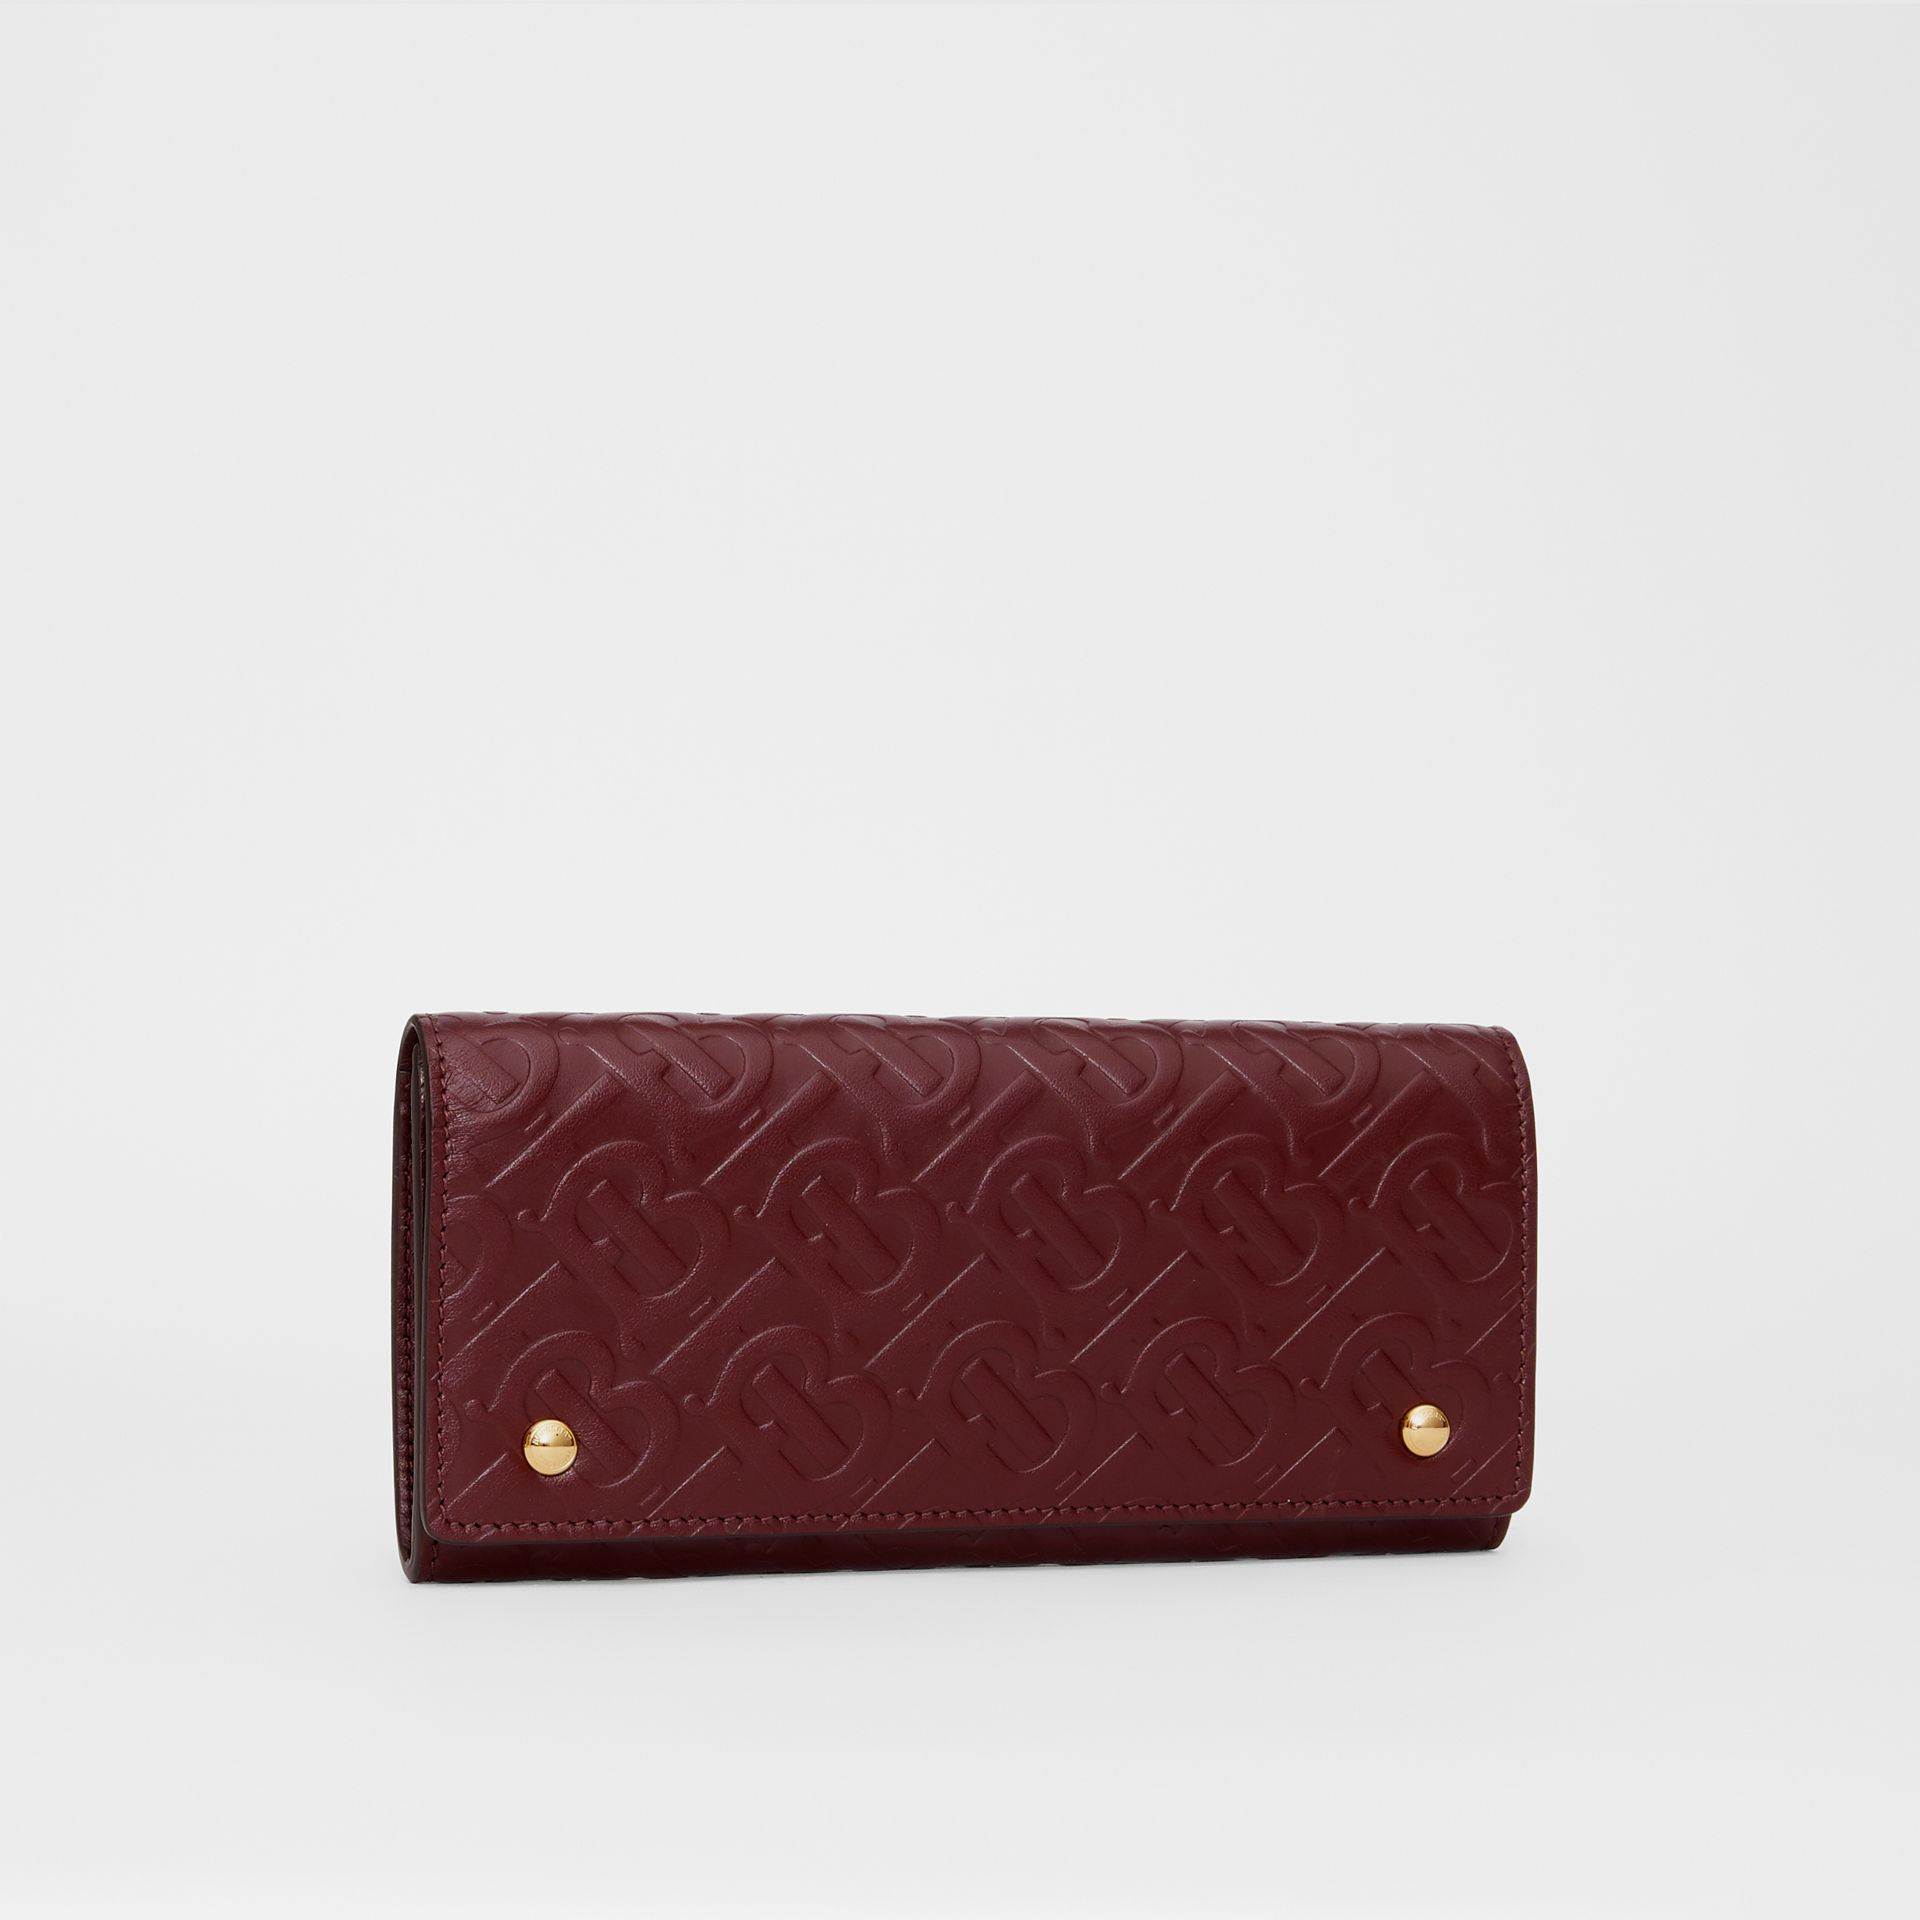 Monogram Leather Continental Wallet in Oxblood - Women | Burberry - gallery image 4